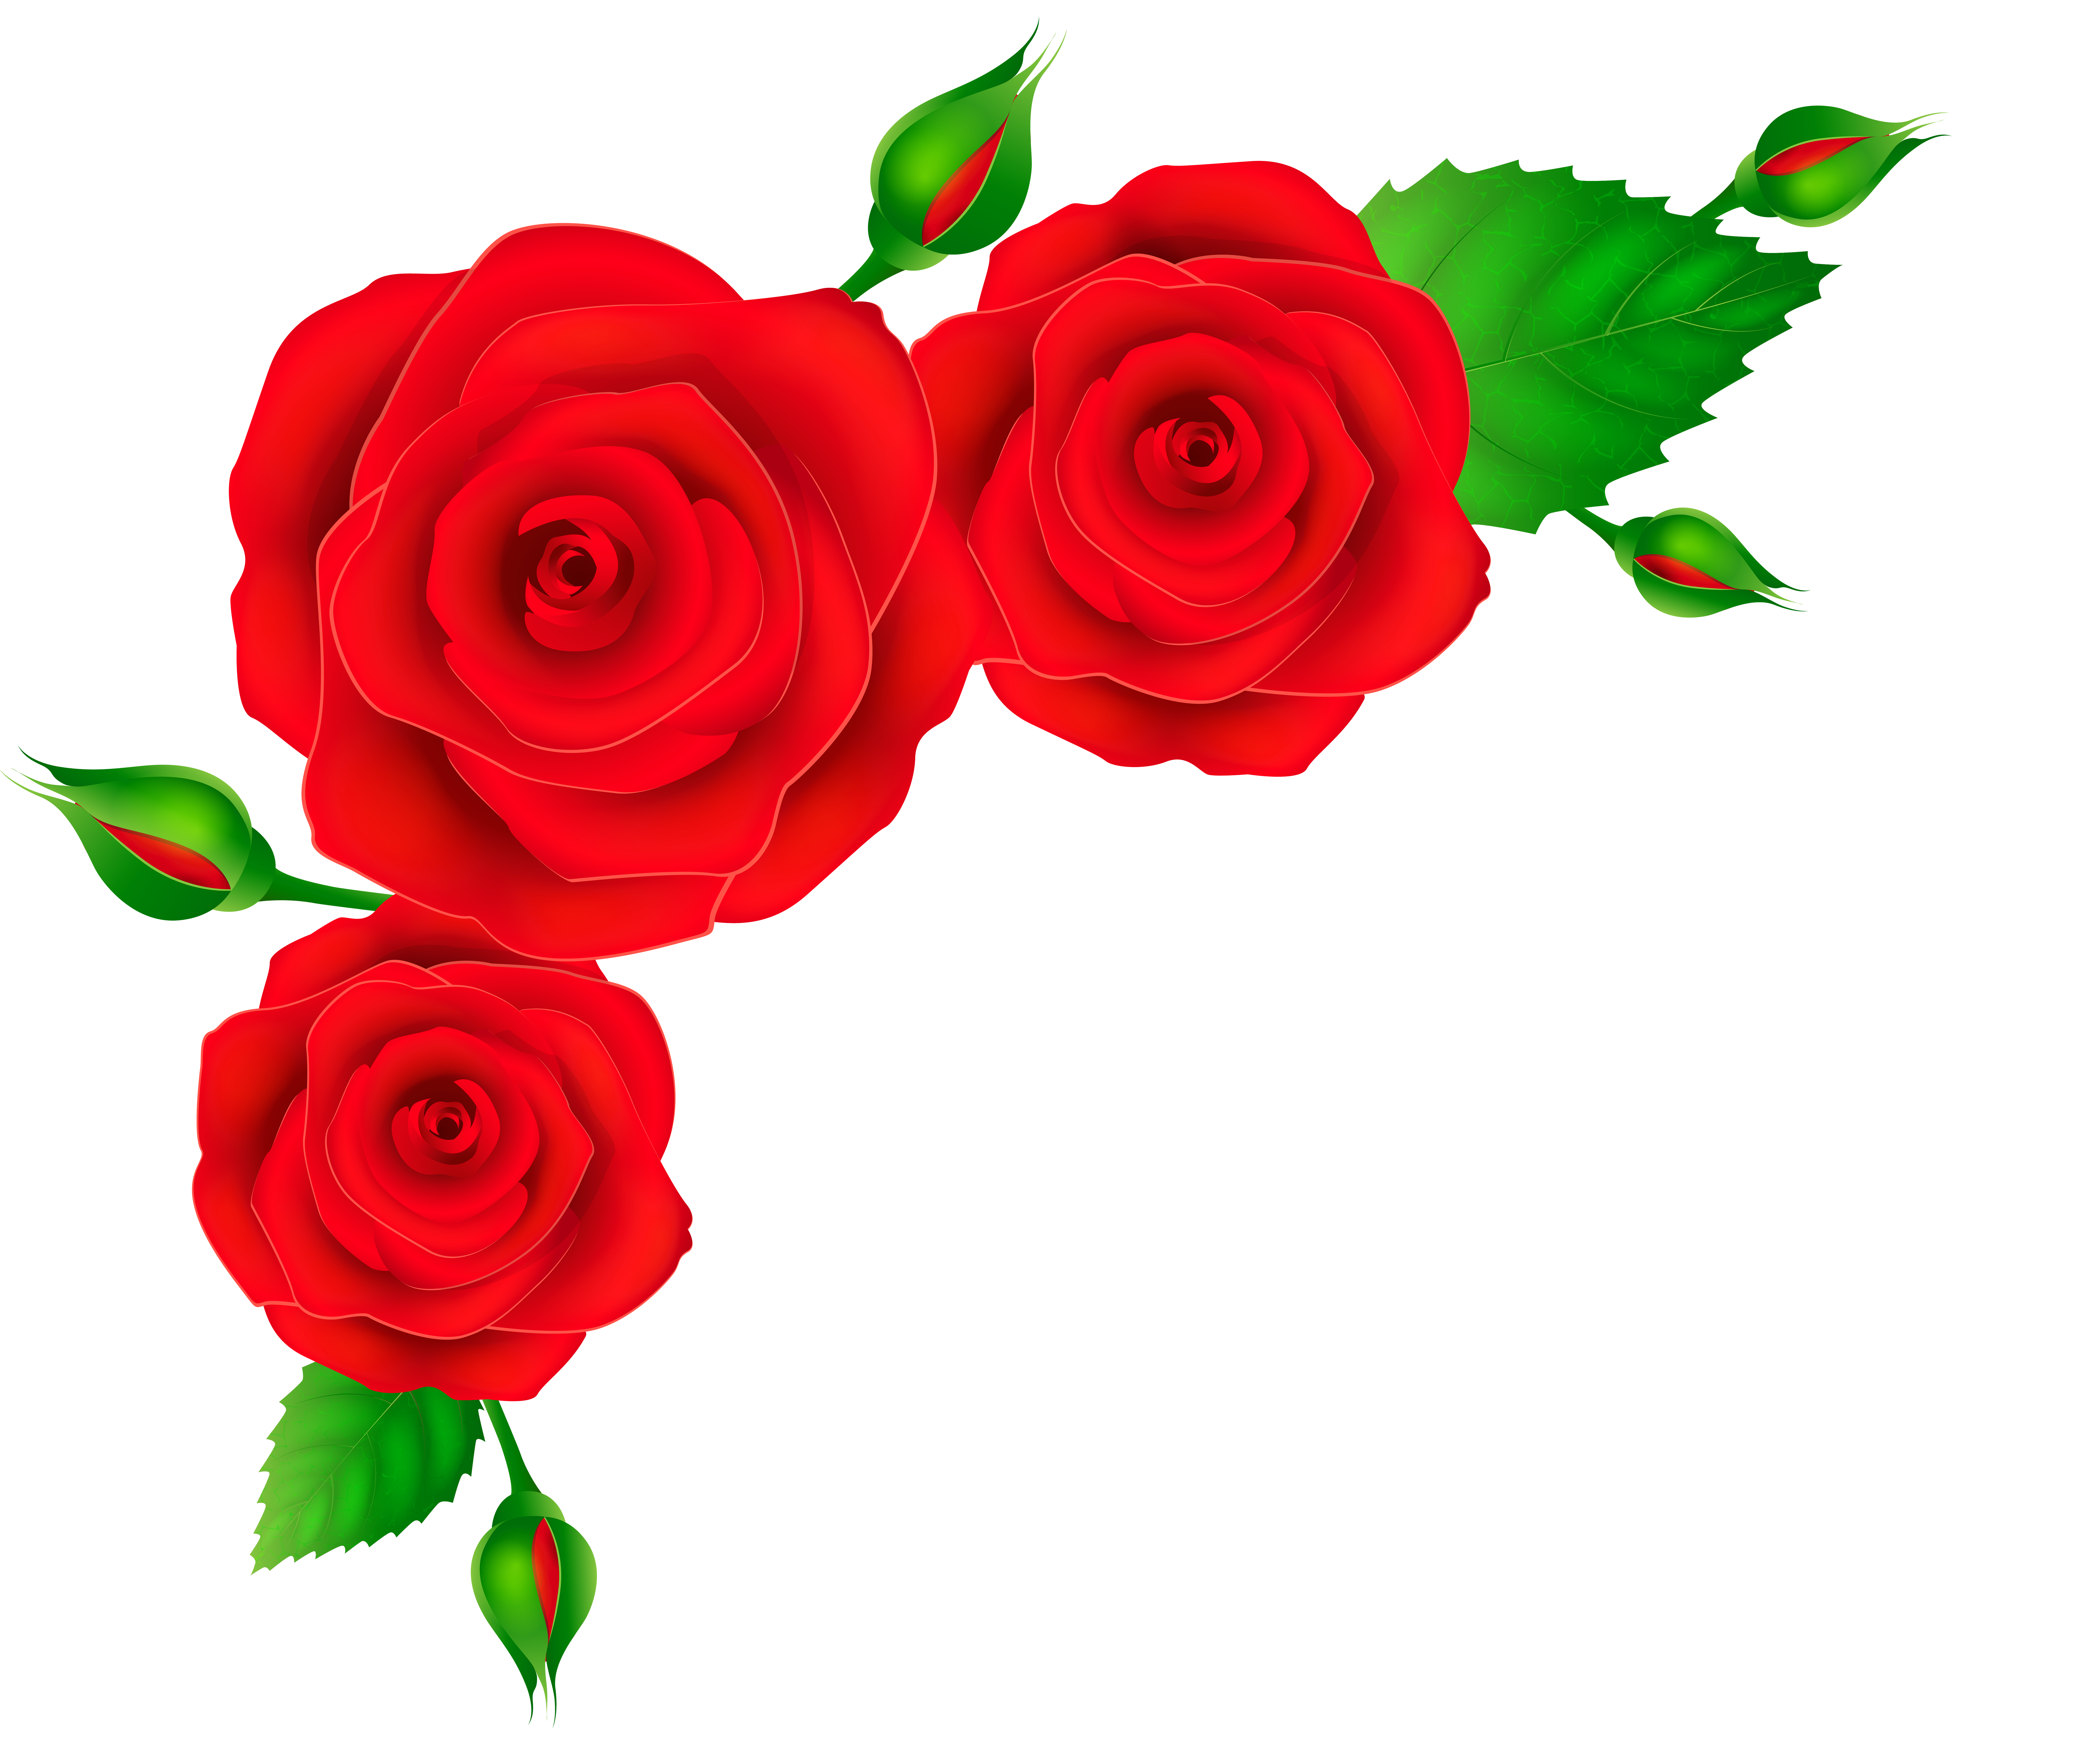 Red Rose clipart decorative #9